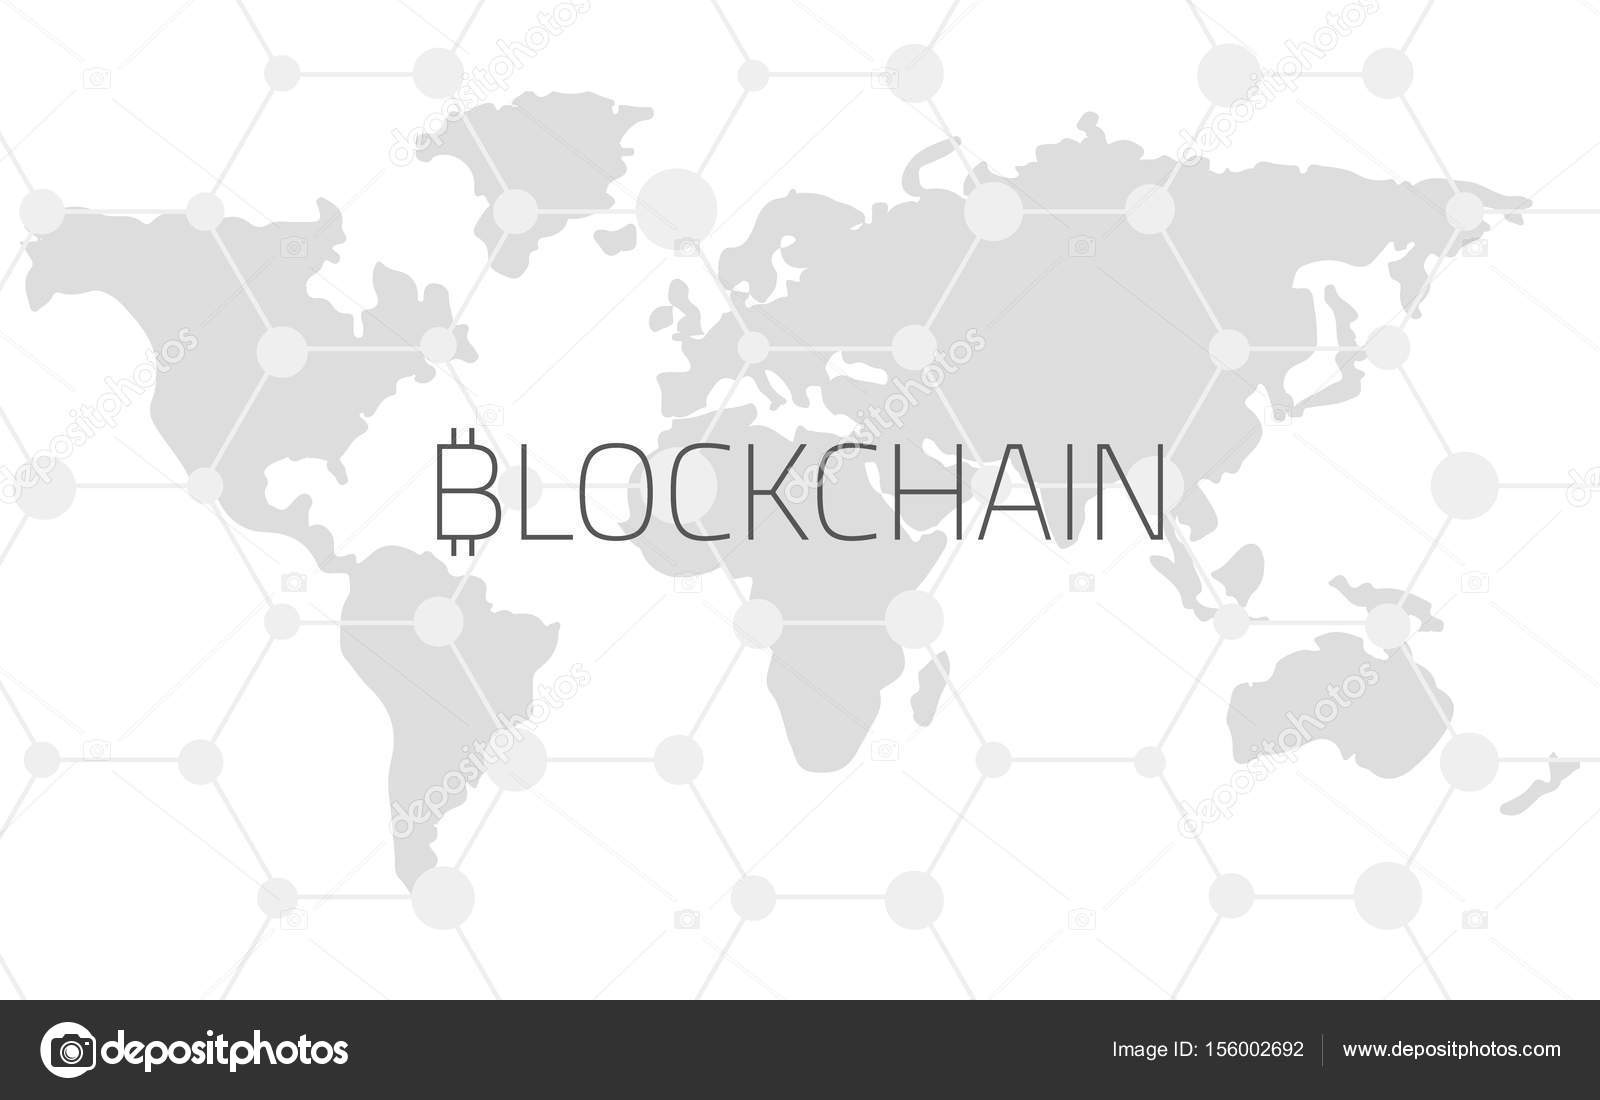 Blockchain on the background of the world map and links stock blockchain on the background of the world map and communication lines editable eps10 vector transparent background vector by vlsv gumiabroncs Images